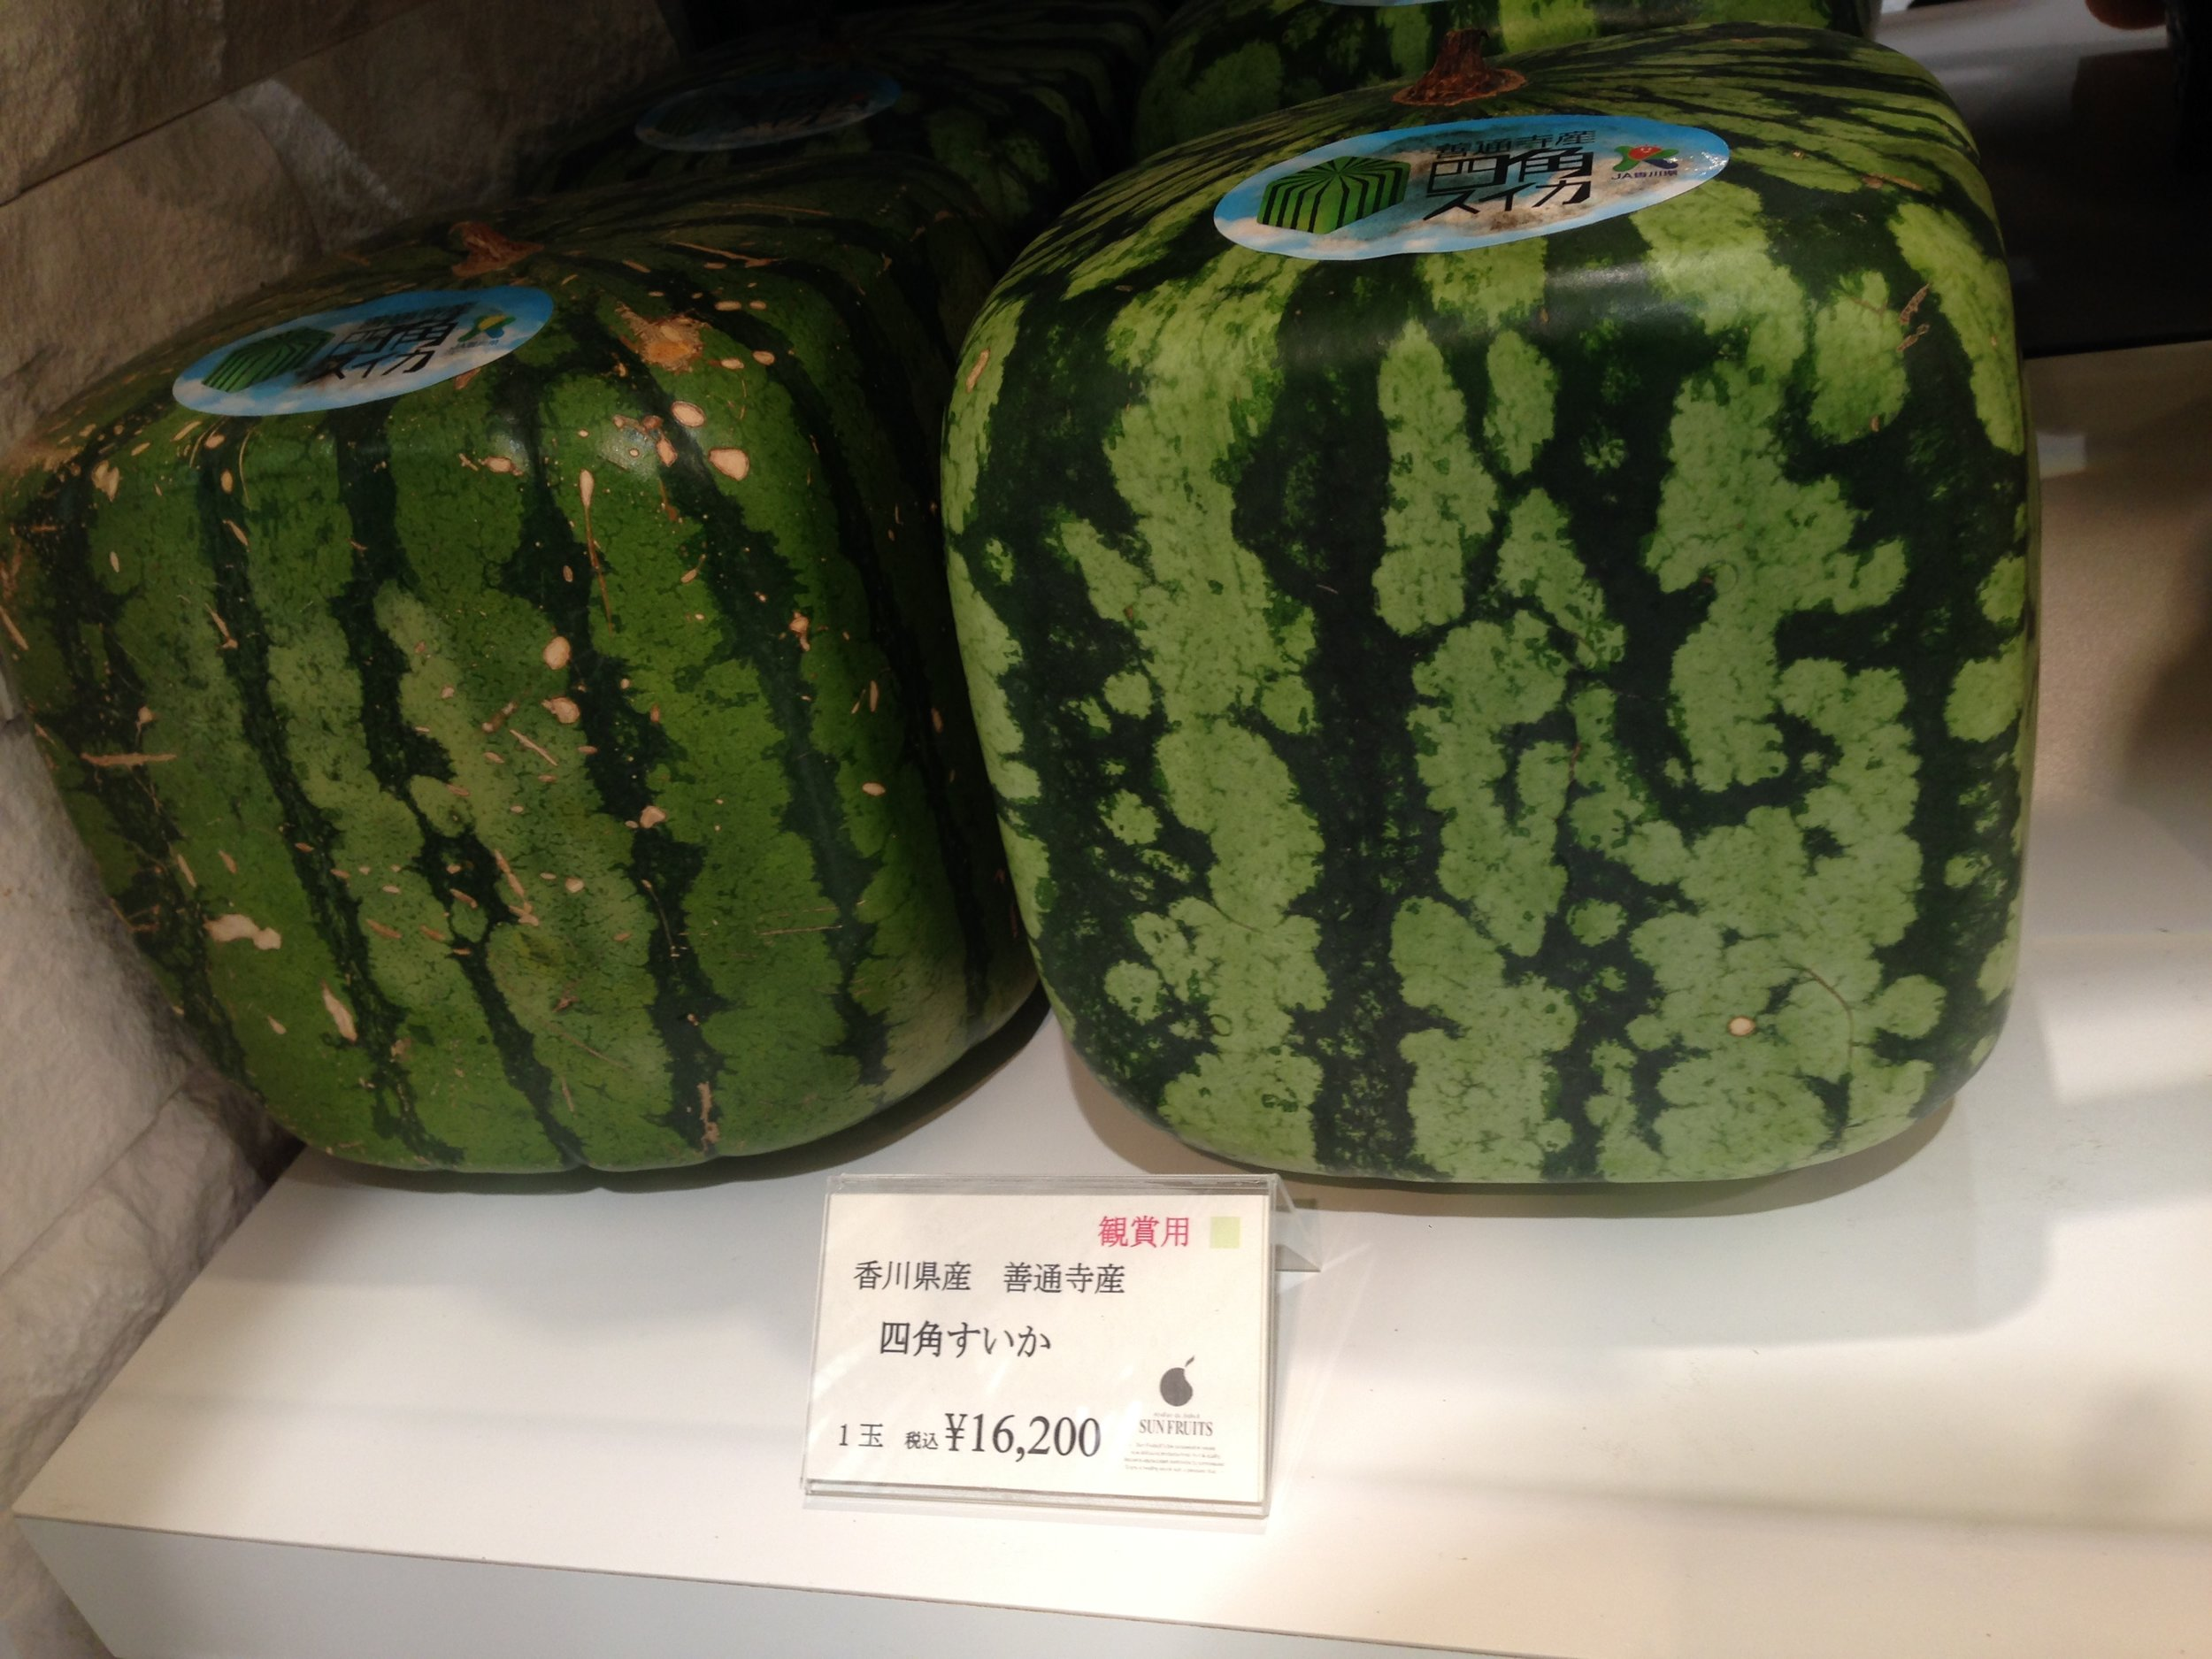 $100 for ONE watermelon! Good for gifting your fancy colleagues